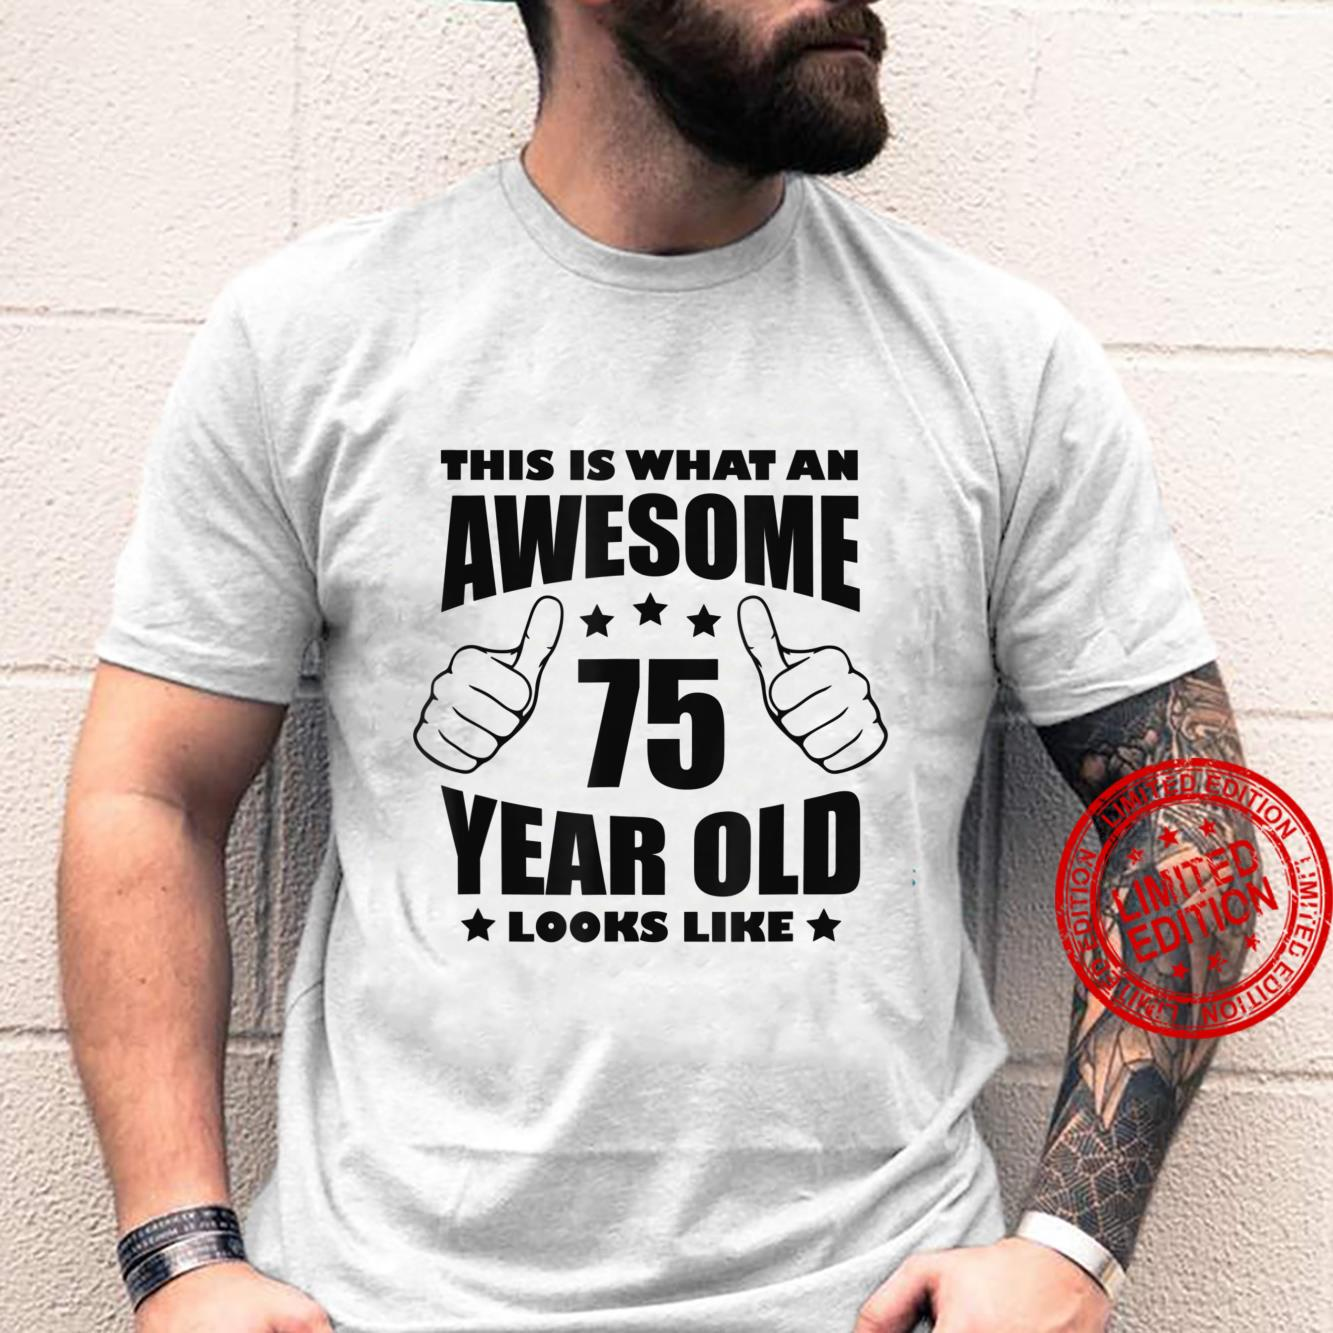 75th Birthday Awesome for her 75 Year Old Grandma 1946 Shirt